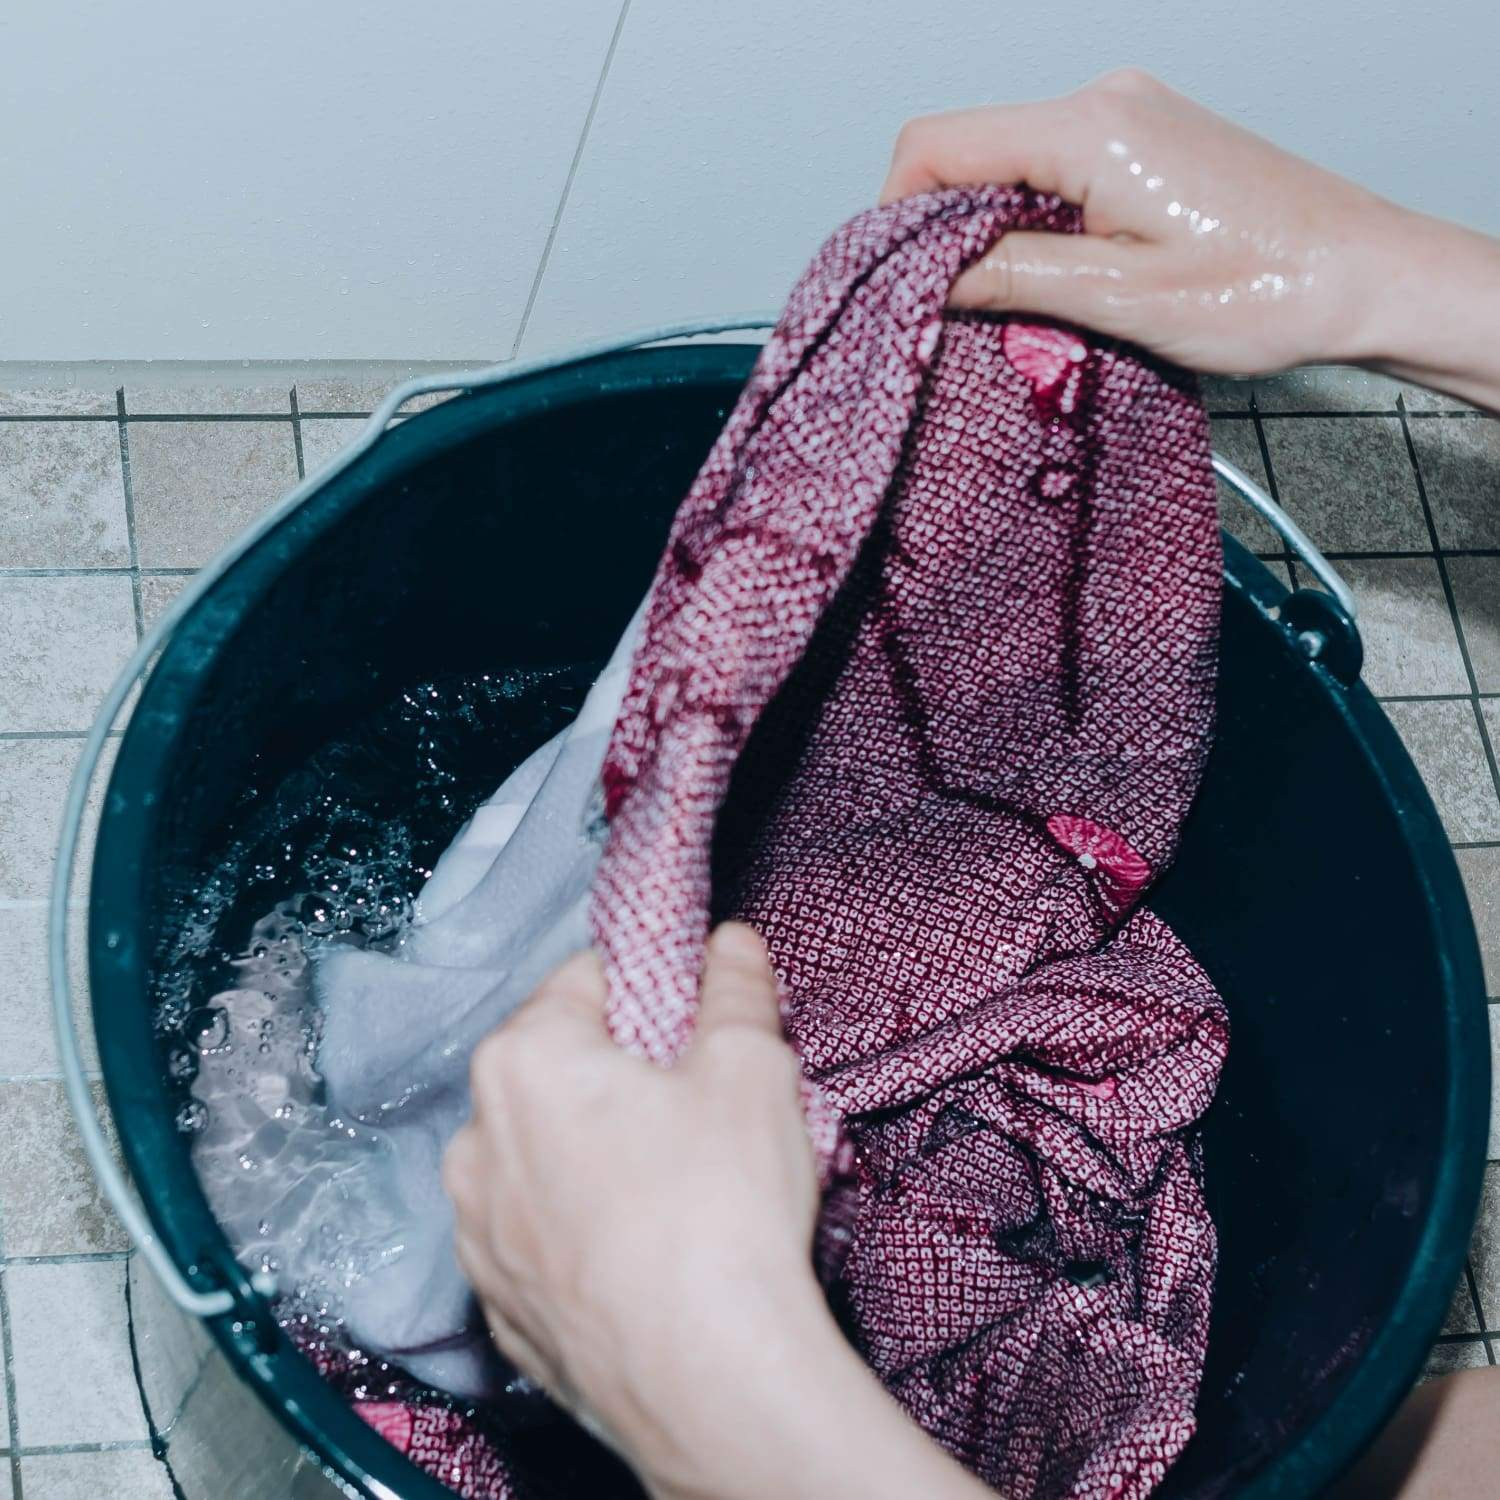 hands carefully lifting a washed kimono out of water